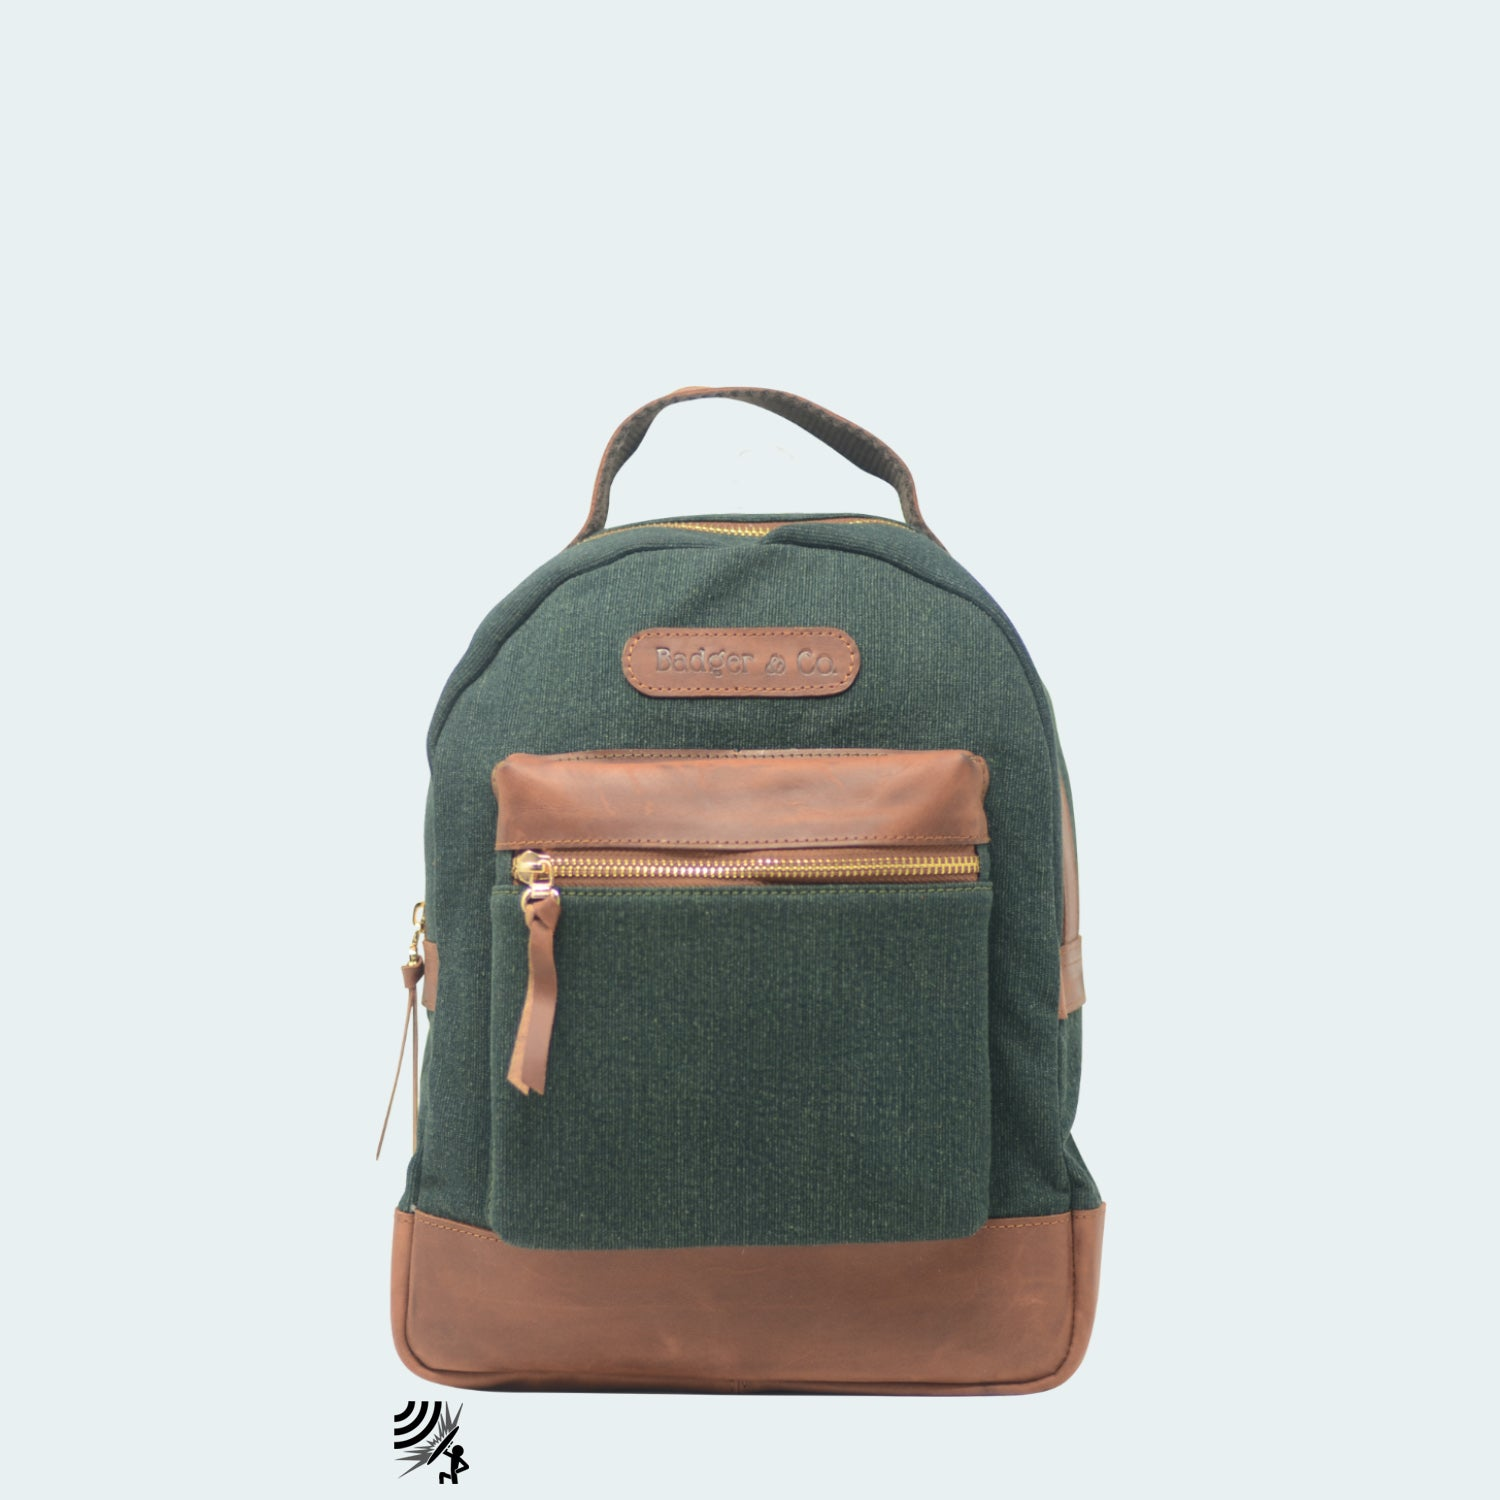 Mini Denim Backpack - Forest Green with Cognac Leather